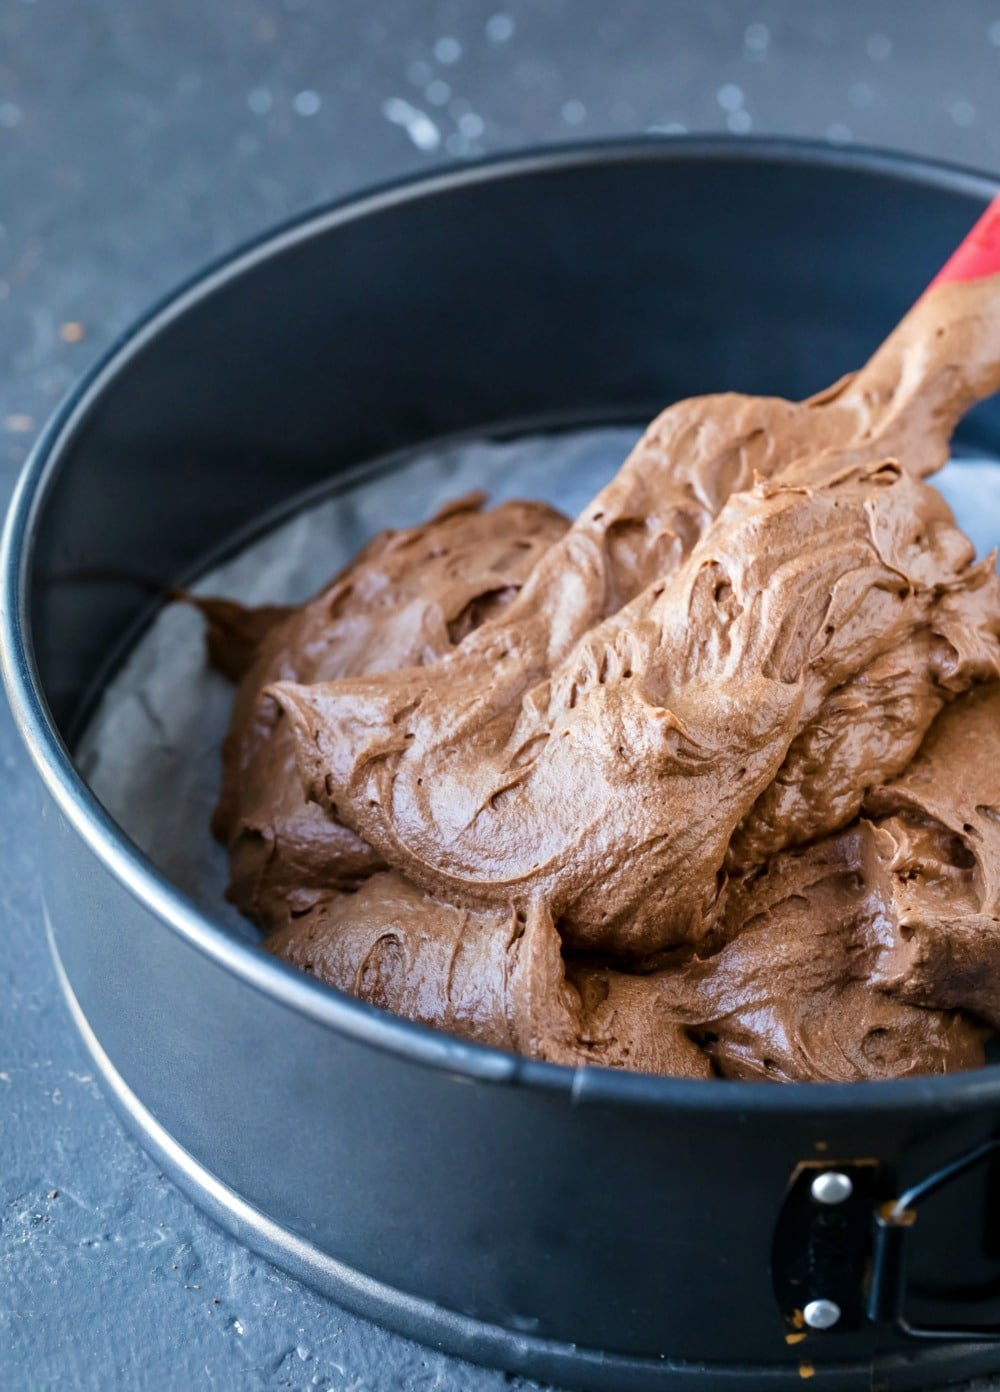 Flourless chocolate cake batter